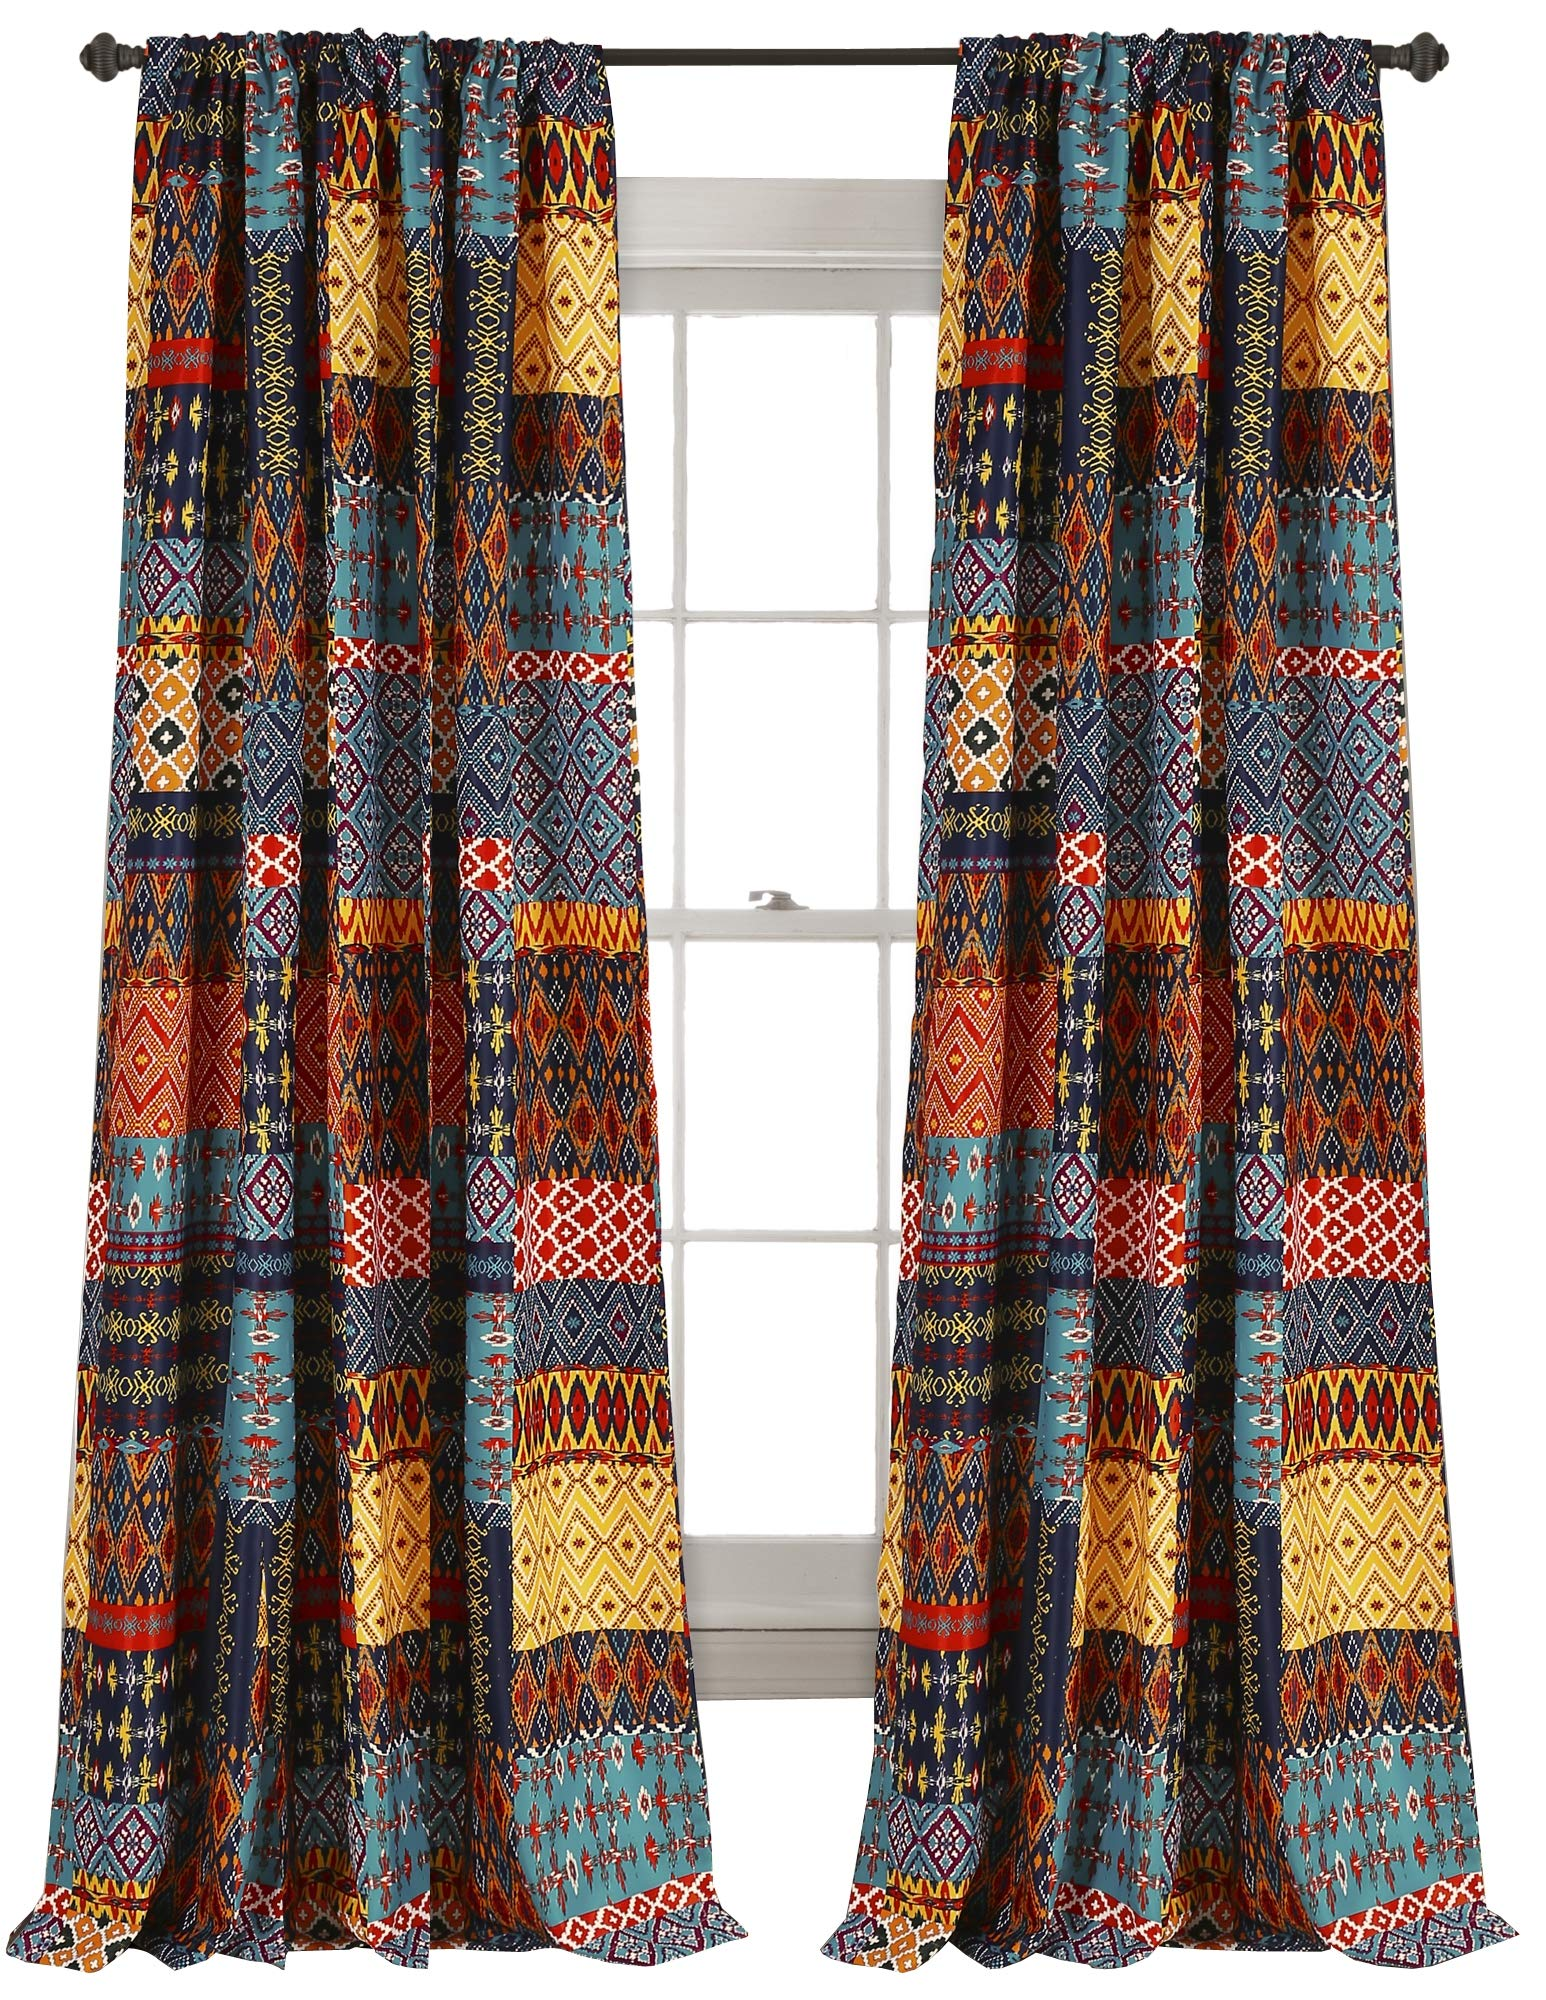 "Lush Decor Misha Room Darkening Window Curtain Panel Set, 84"" x 52"", Multicolor - Stylish and bold set of curtain panels with a colorful, geometric, patchwork design throughout. Room darkening window curtains filter a portion of light and heat, but allow for some natural light to come through. Curtains measure 84""H x 52""W and an eye-catching piece to your bedroom, living room or dining room. - living-room-soft-furnishings, living-room, draperies-curtains-shades - 91TPxOhyldL -"